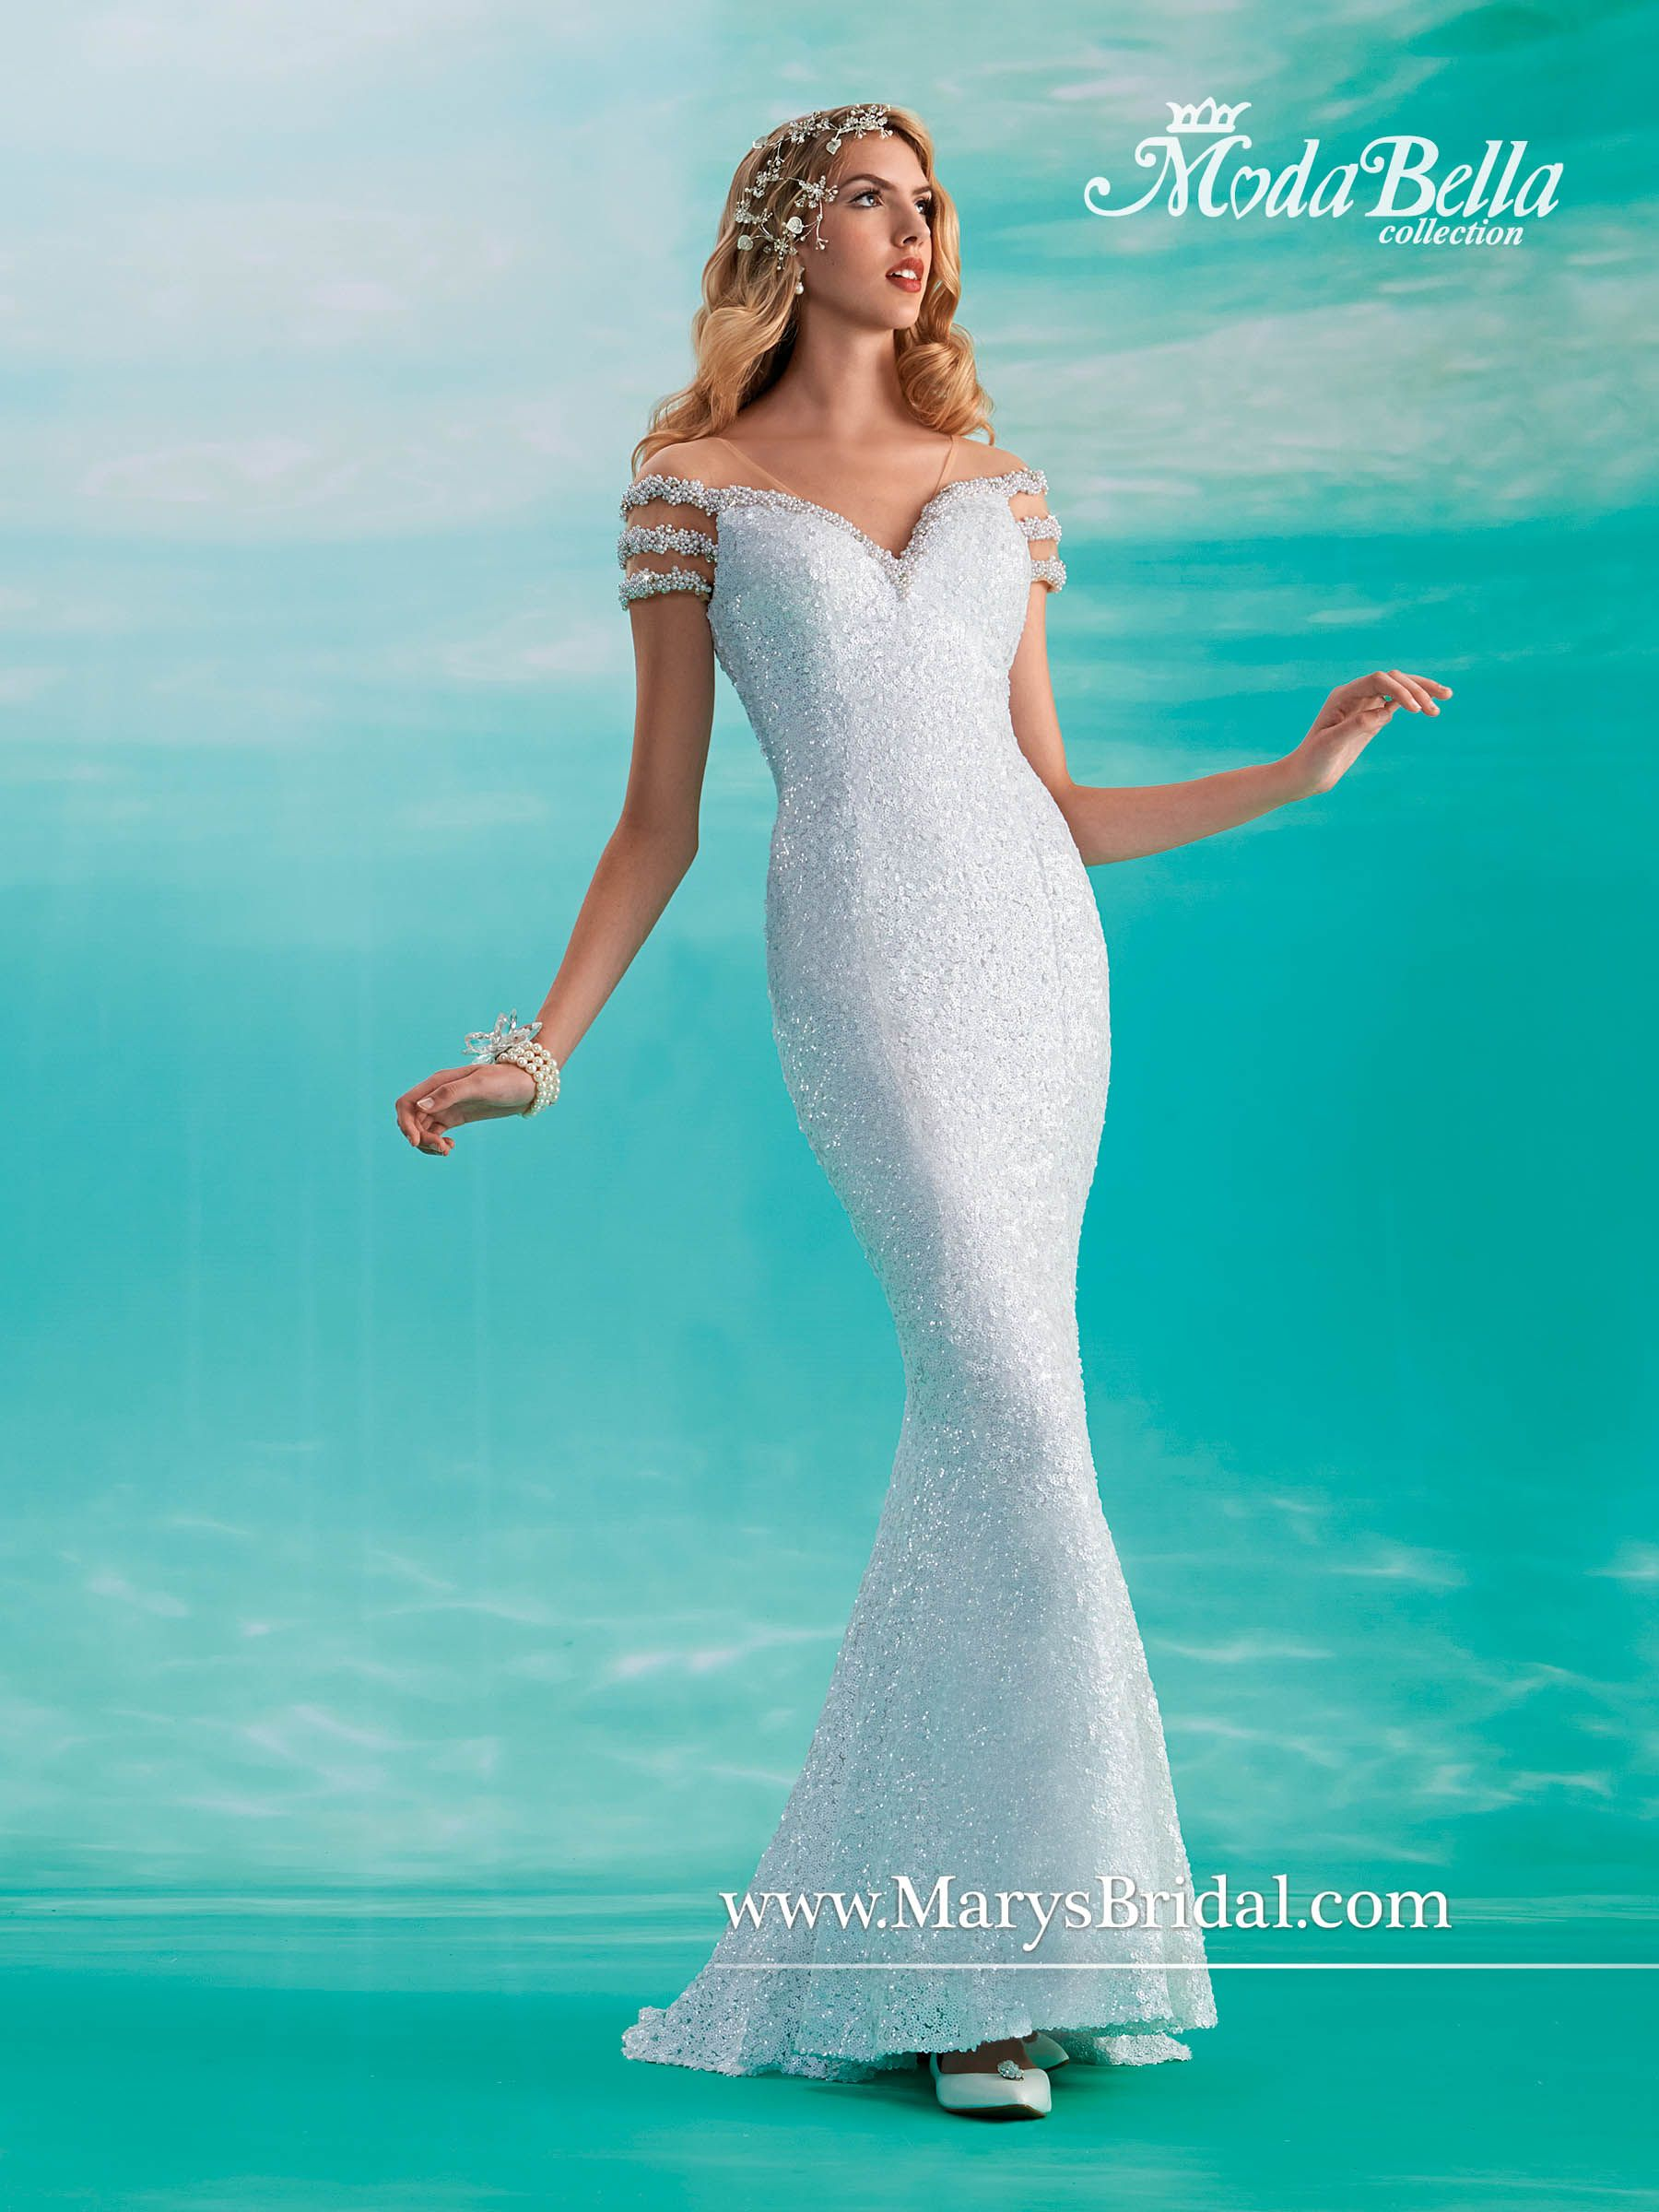 Mary\'s Bridal : Modal Bella : S15-3Y373 Fit and flare, all-over ...